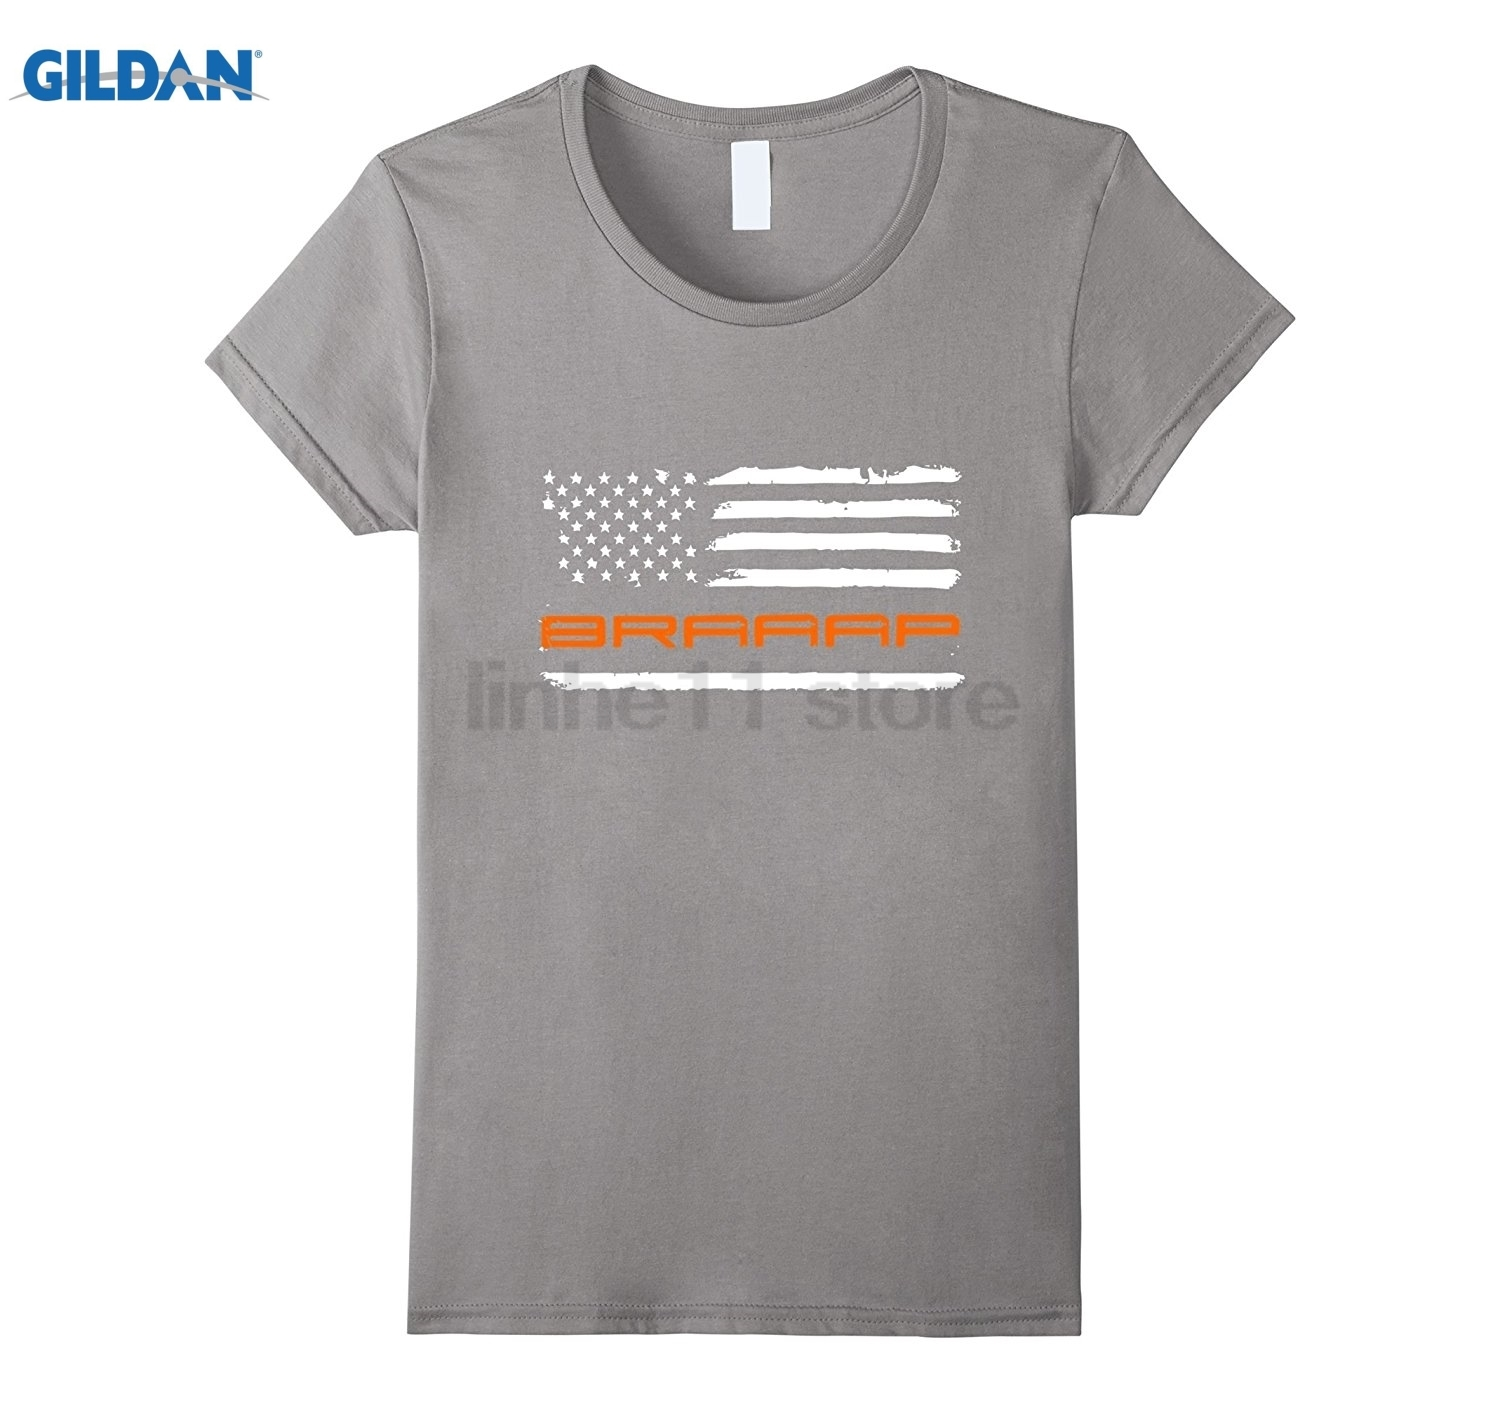 GILDAN Braaap - Motocross, Dirt , Motorcycle, Flag Blaze Orange Womens T-shirt ...